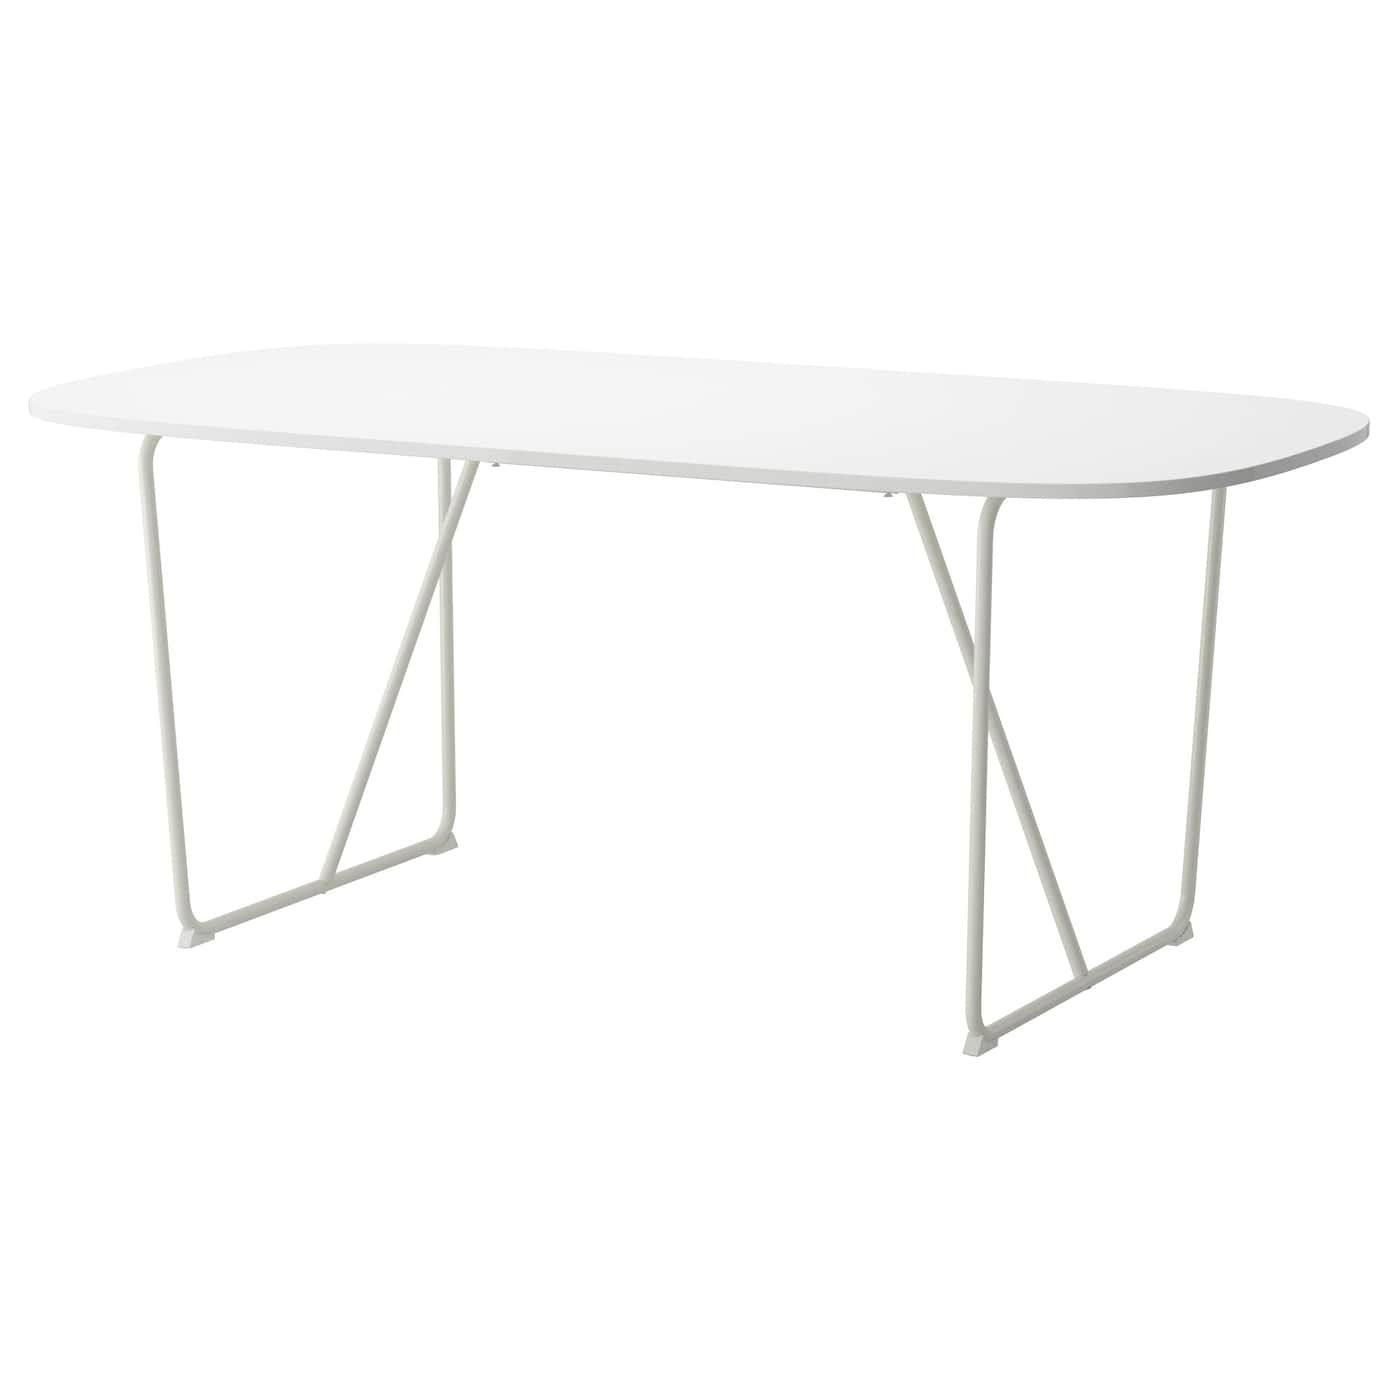 IKEA US Furniture and Home Furnishings | Ikea dining table